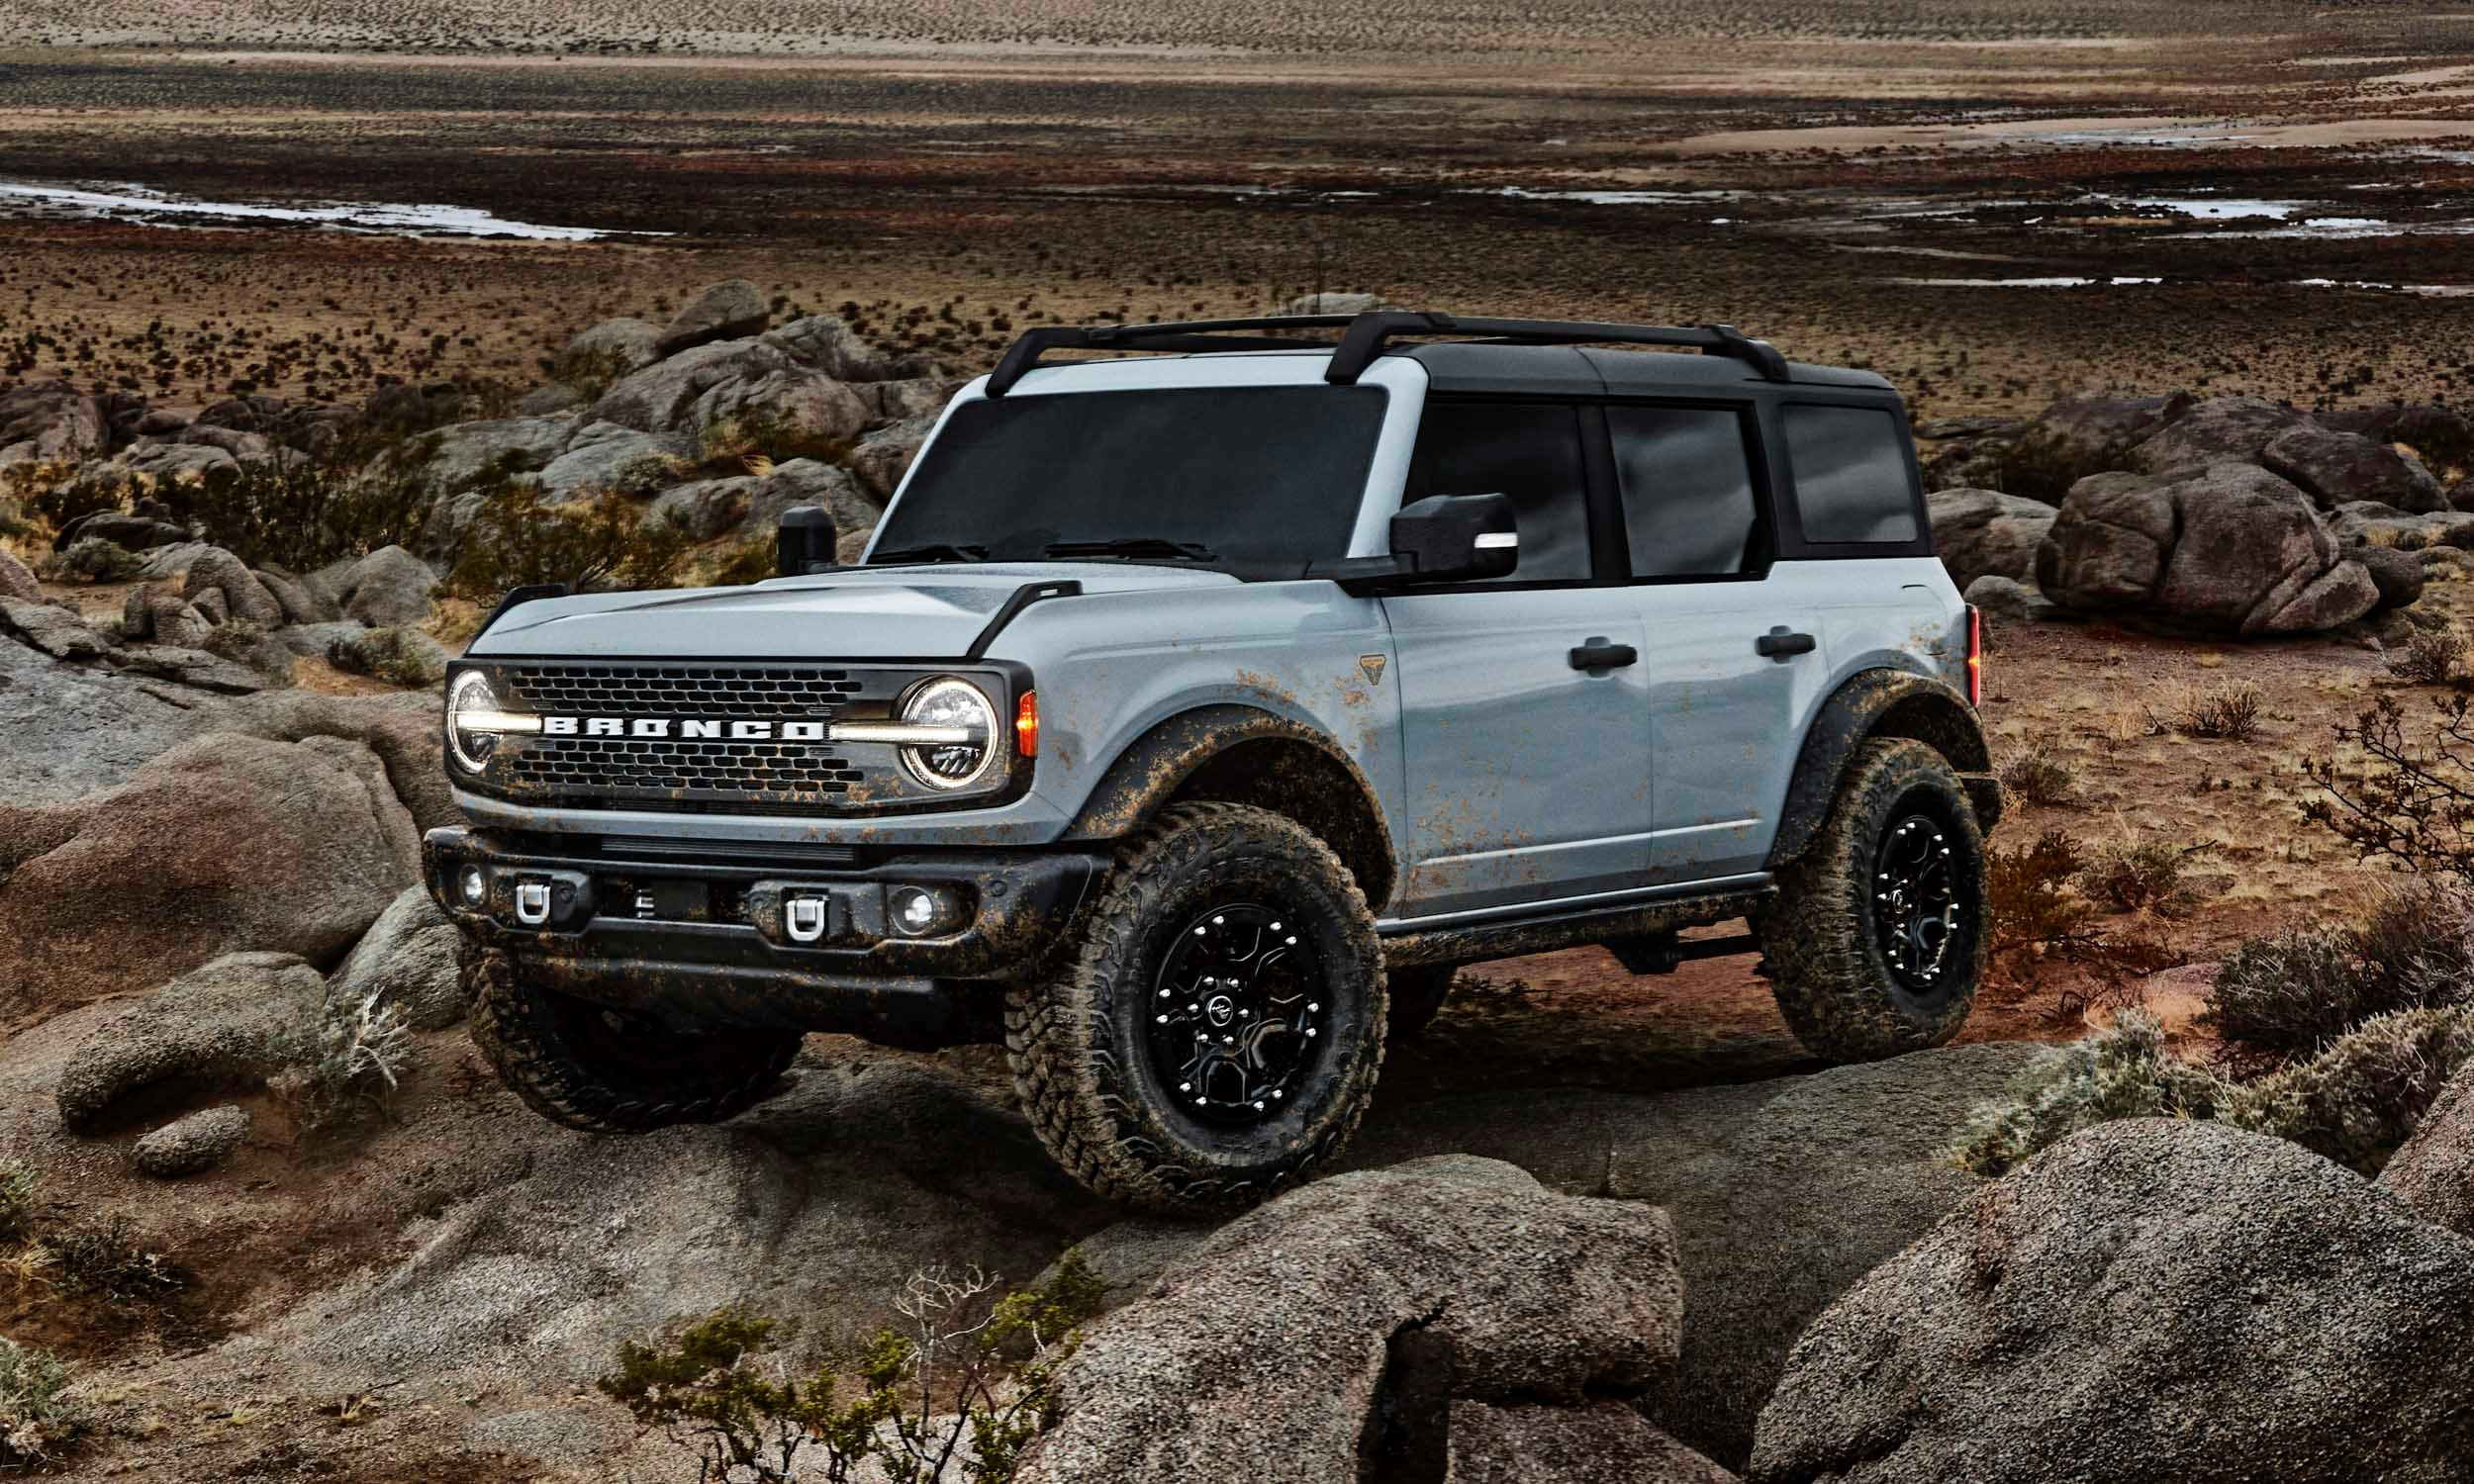 2021 Ford Bronco First Look: Everything you need to know about this bad mudder trucker